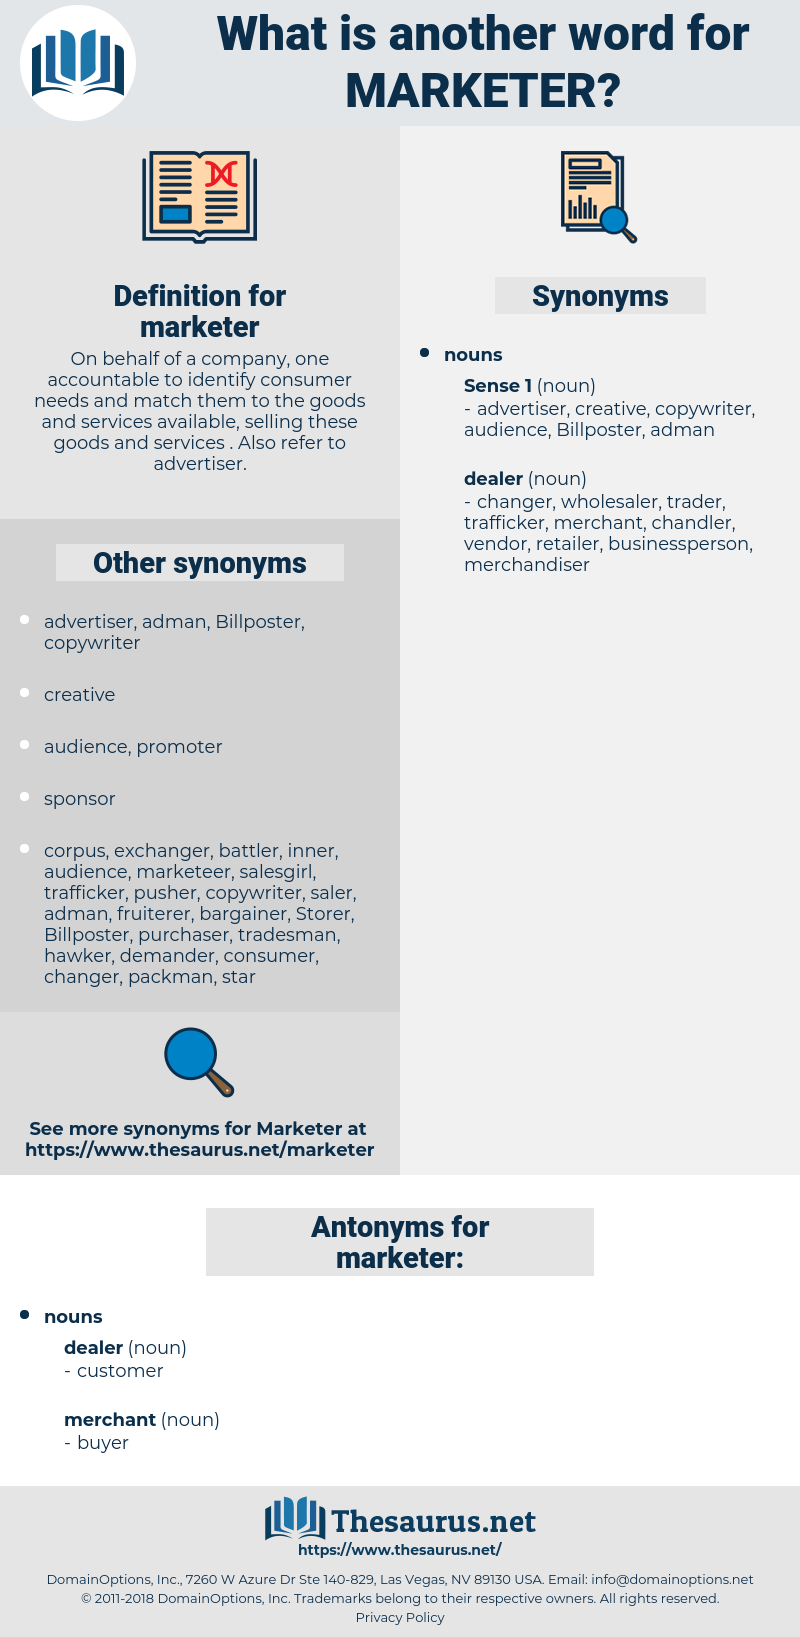 marketer, synonym marketer, another word for marketer, words like marketer, thesaurus marketer